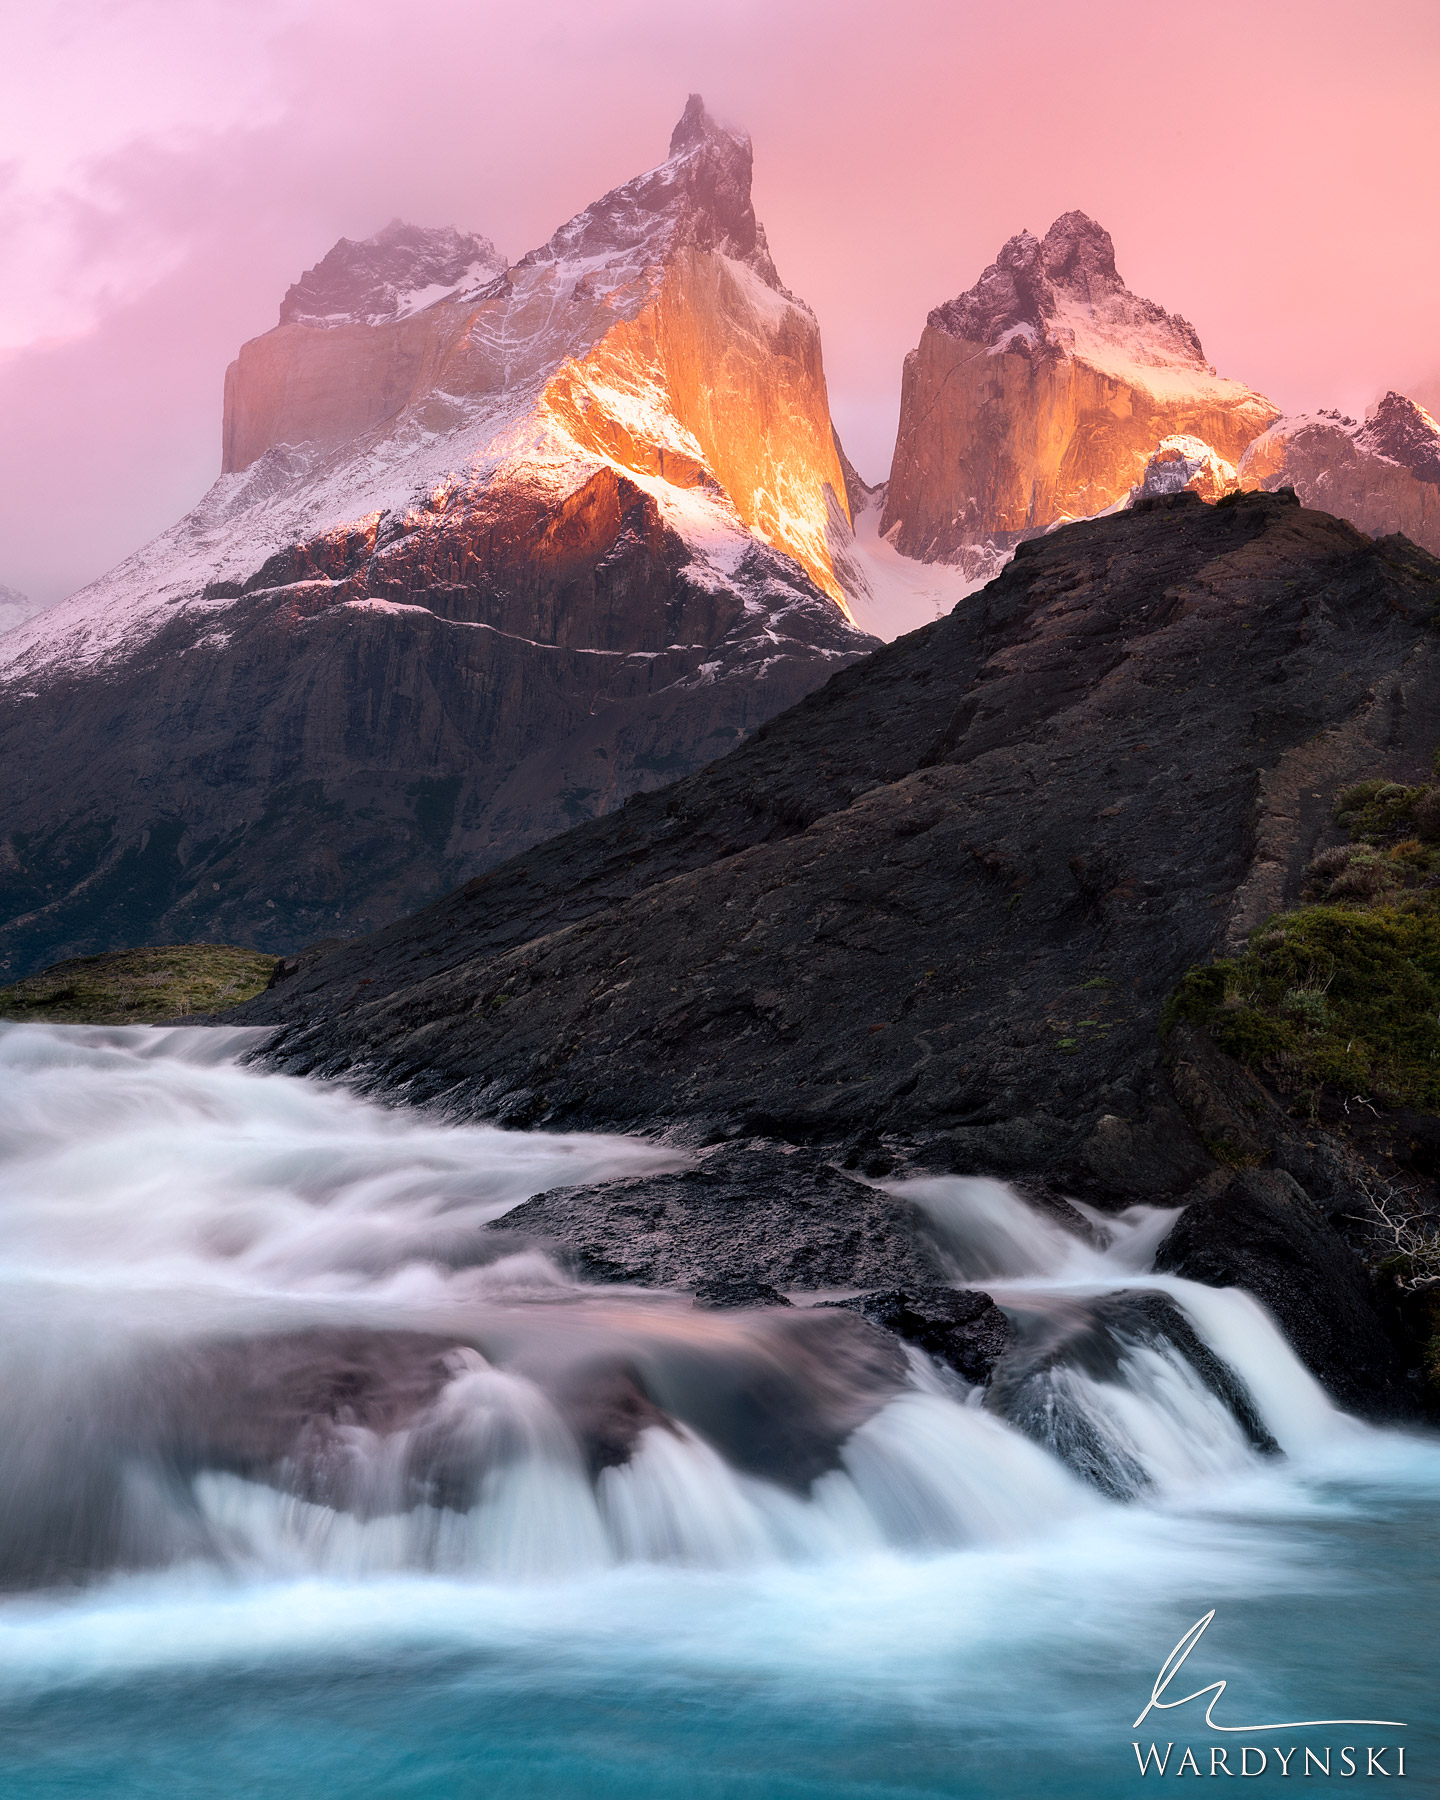 Fine Art Print | Limited Edition of 100  A beam of warm light strikes Cuerno Del Paine during a particularly windy sunrise in...